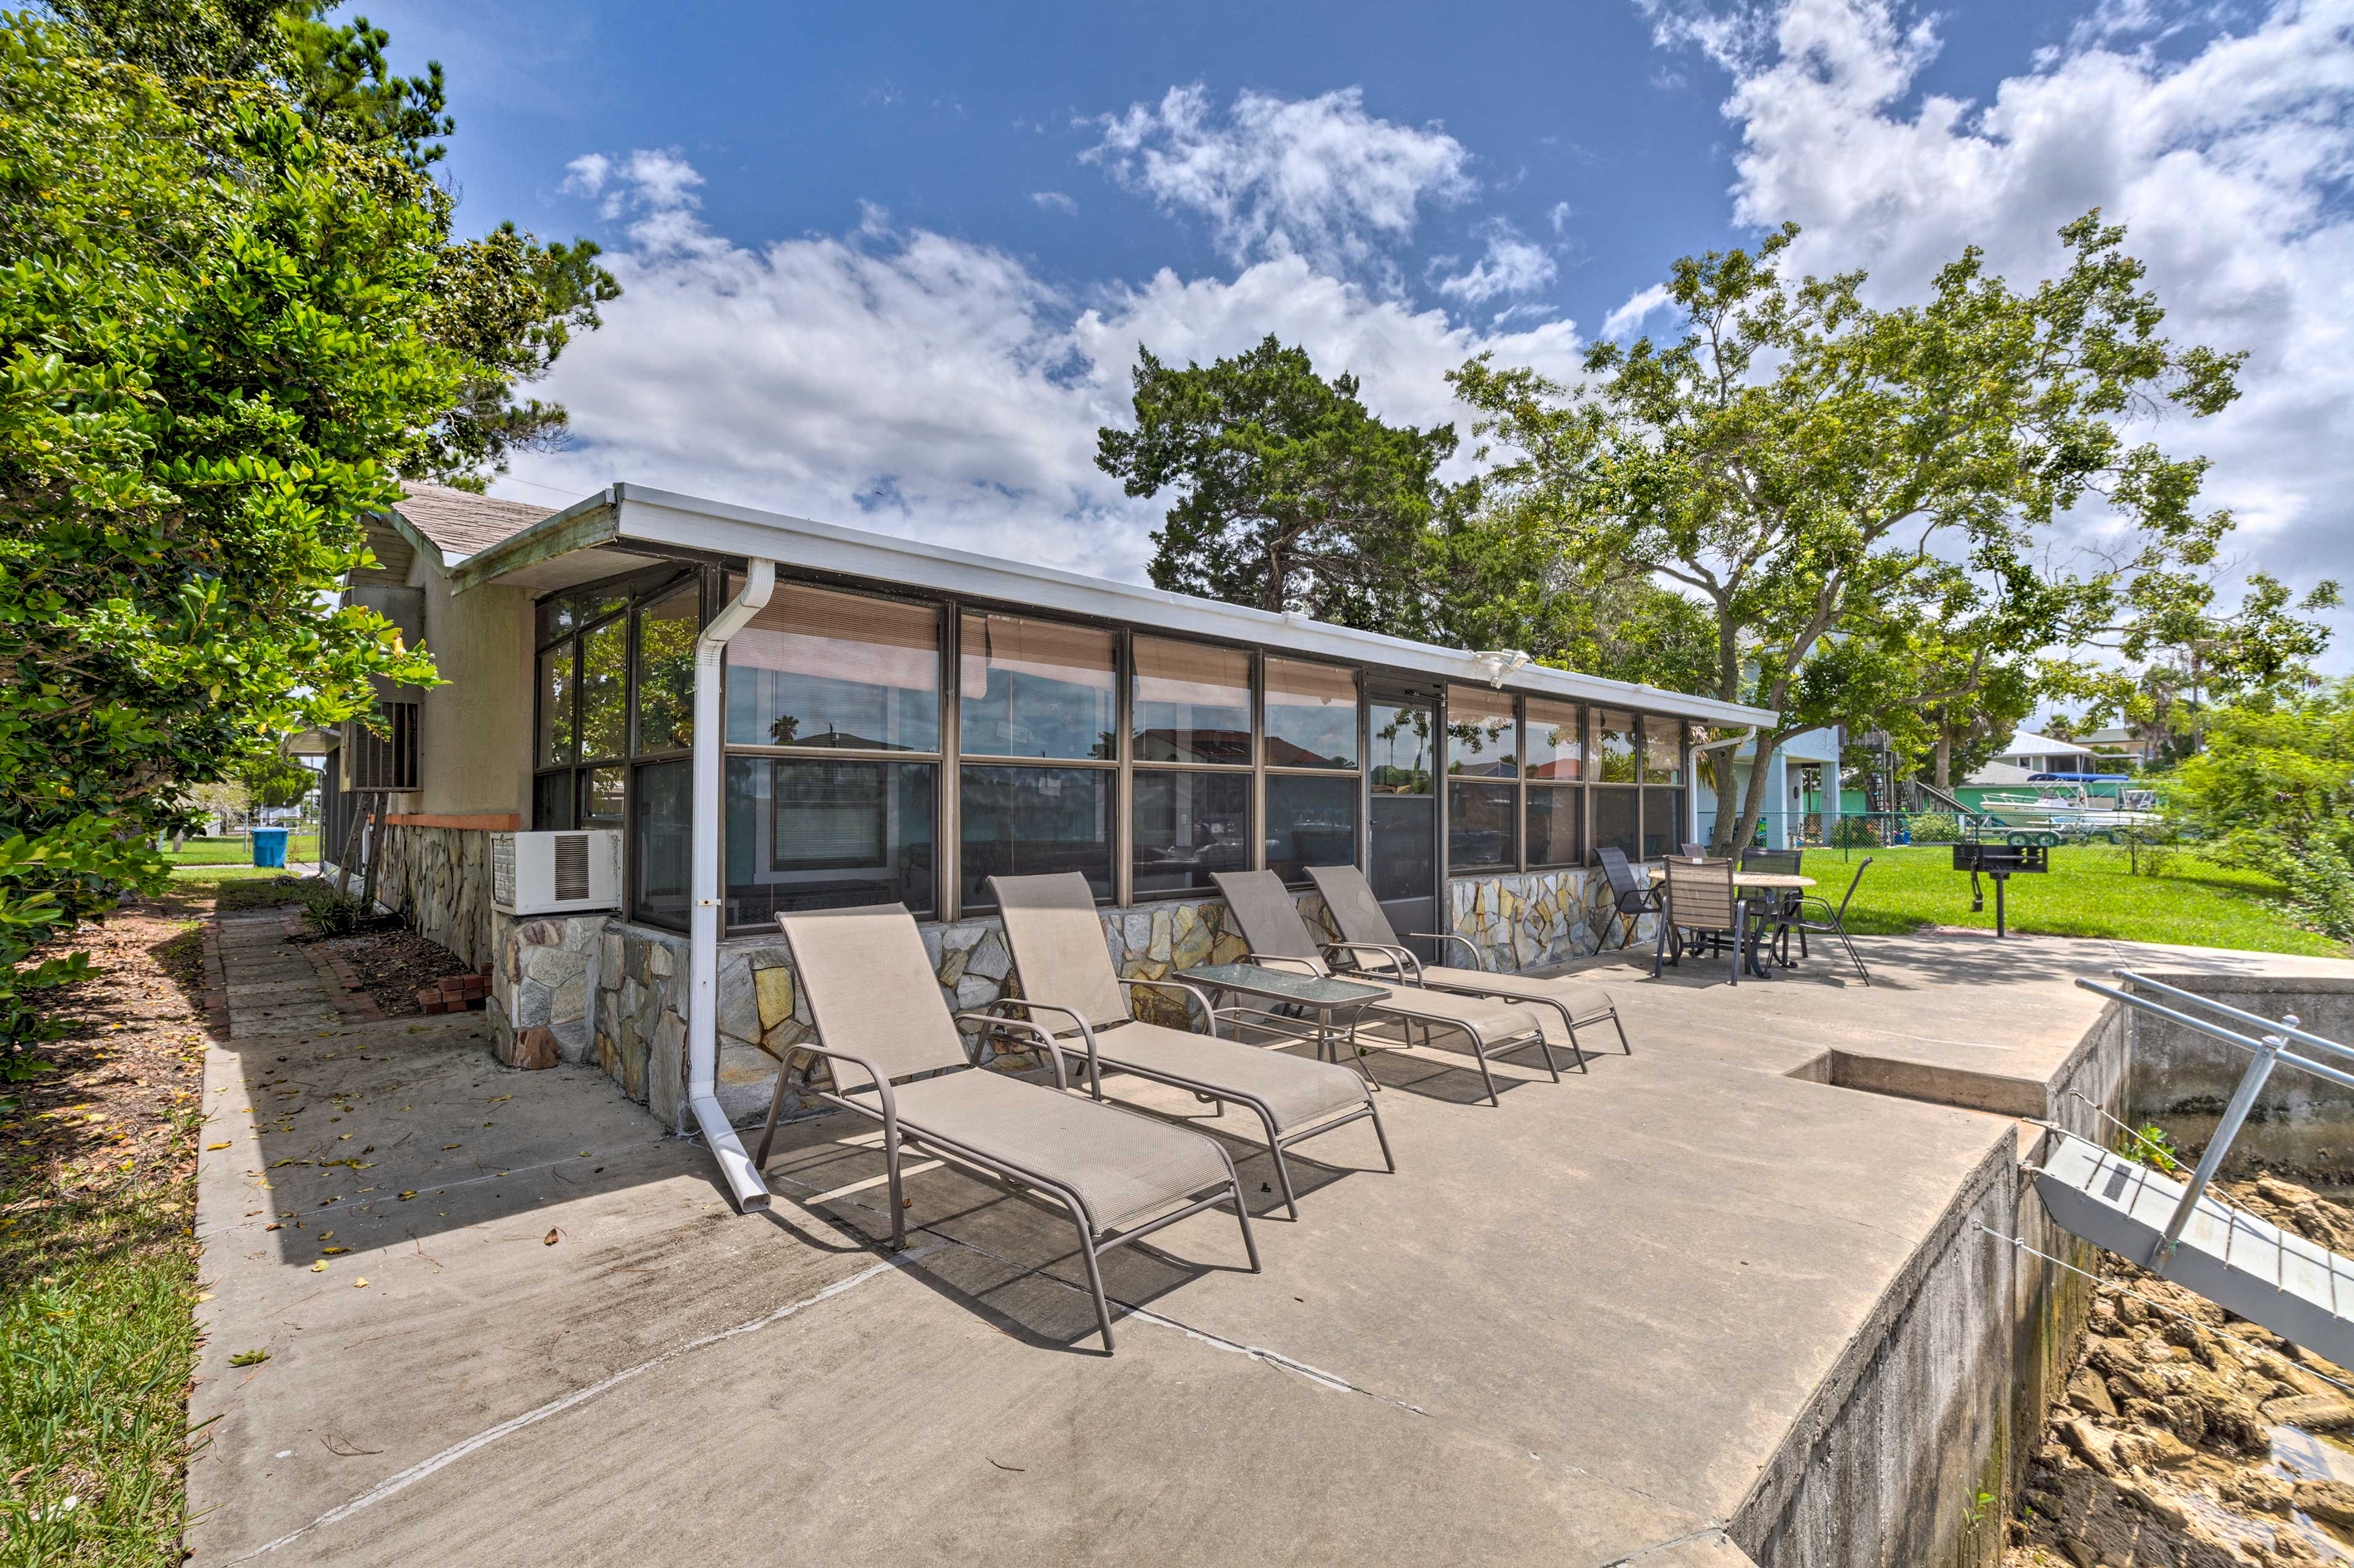 This 3-bedroom, 2-bathroom waterfront house accommodates 8 guests.